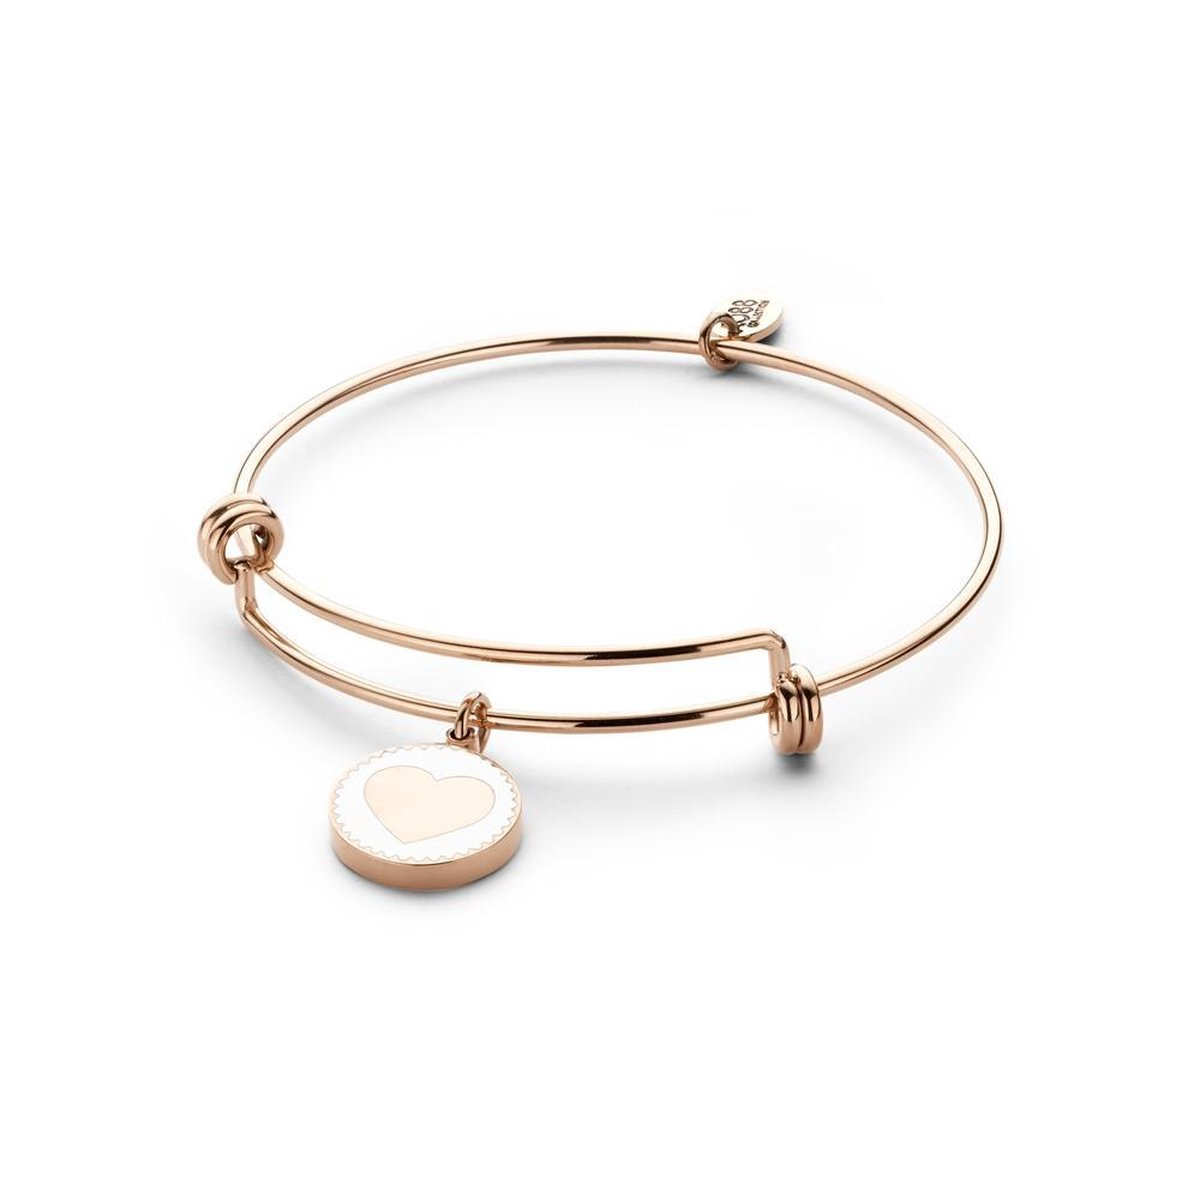 CO88 Collection Majestic 8CB 90123 Stalen Armband met Hangers - Hart - One-size - Rosékleurig / Wit